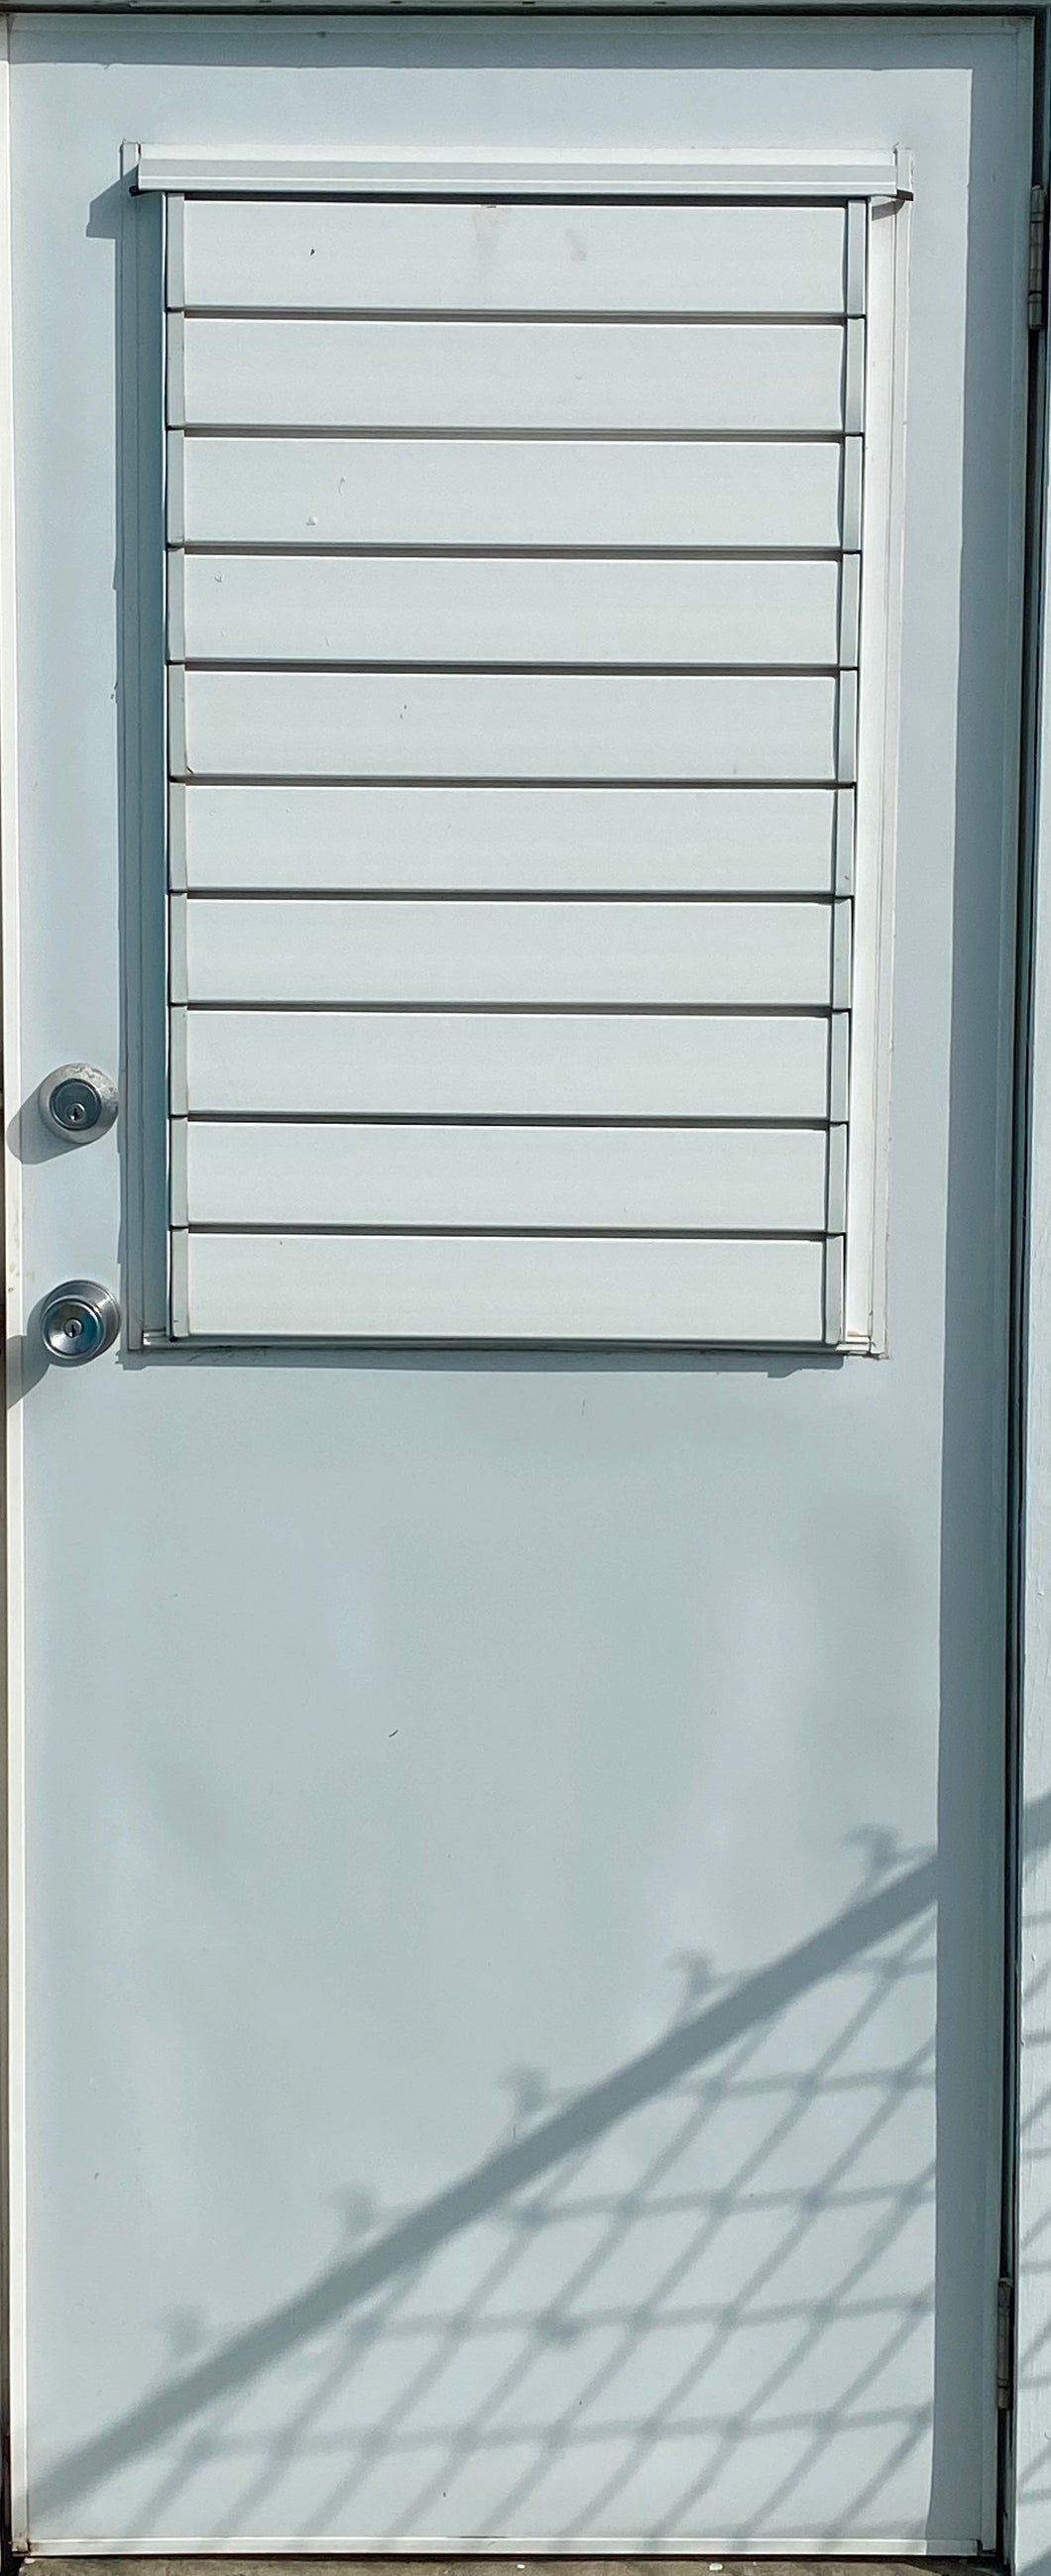 UPVC DOOR - 1/2 LOUVRE DOOR (SPECIAL ORDER)